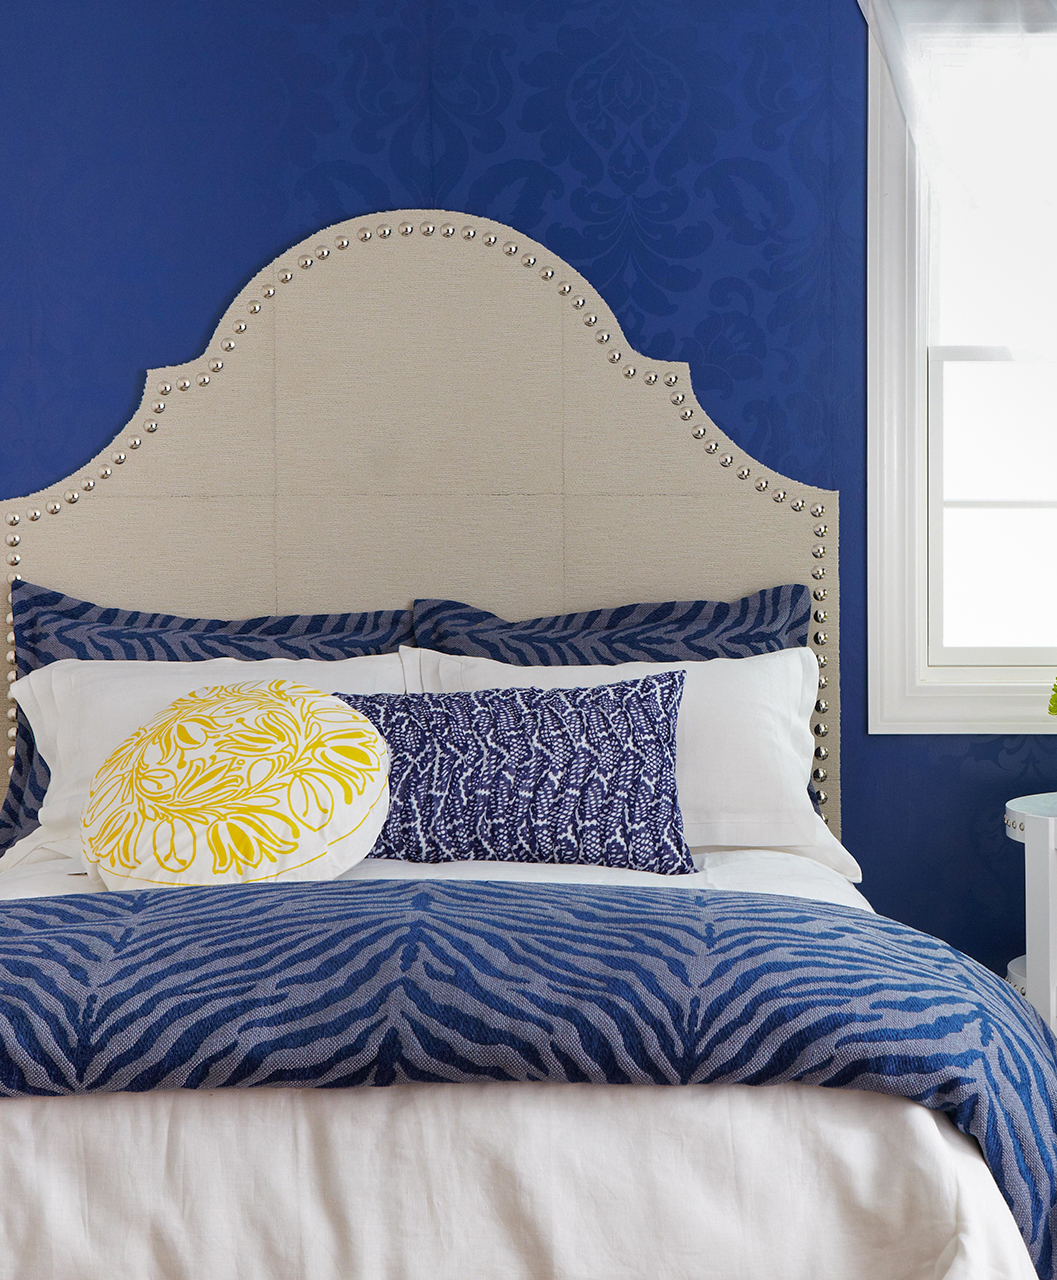 blue bedroom carpeted headboard